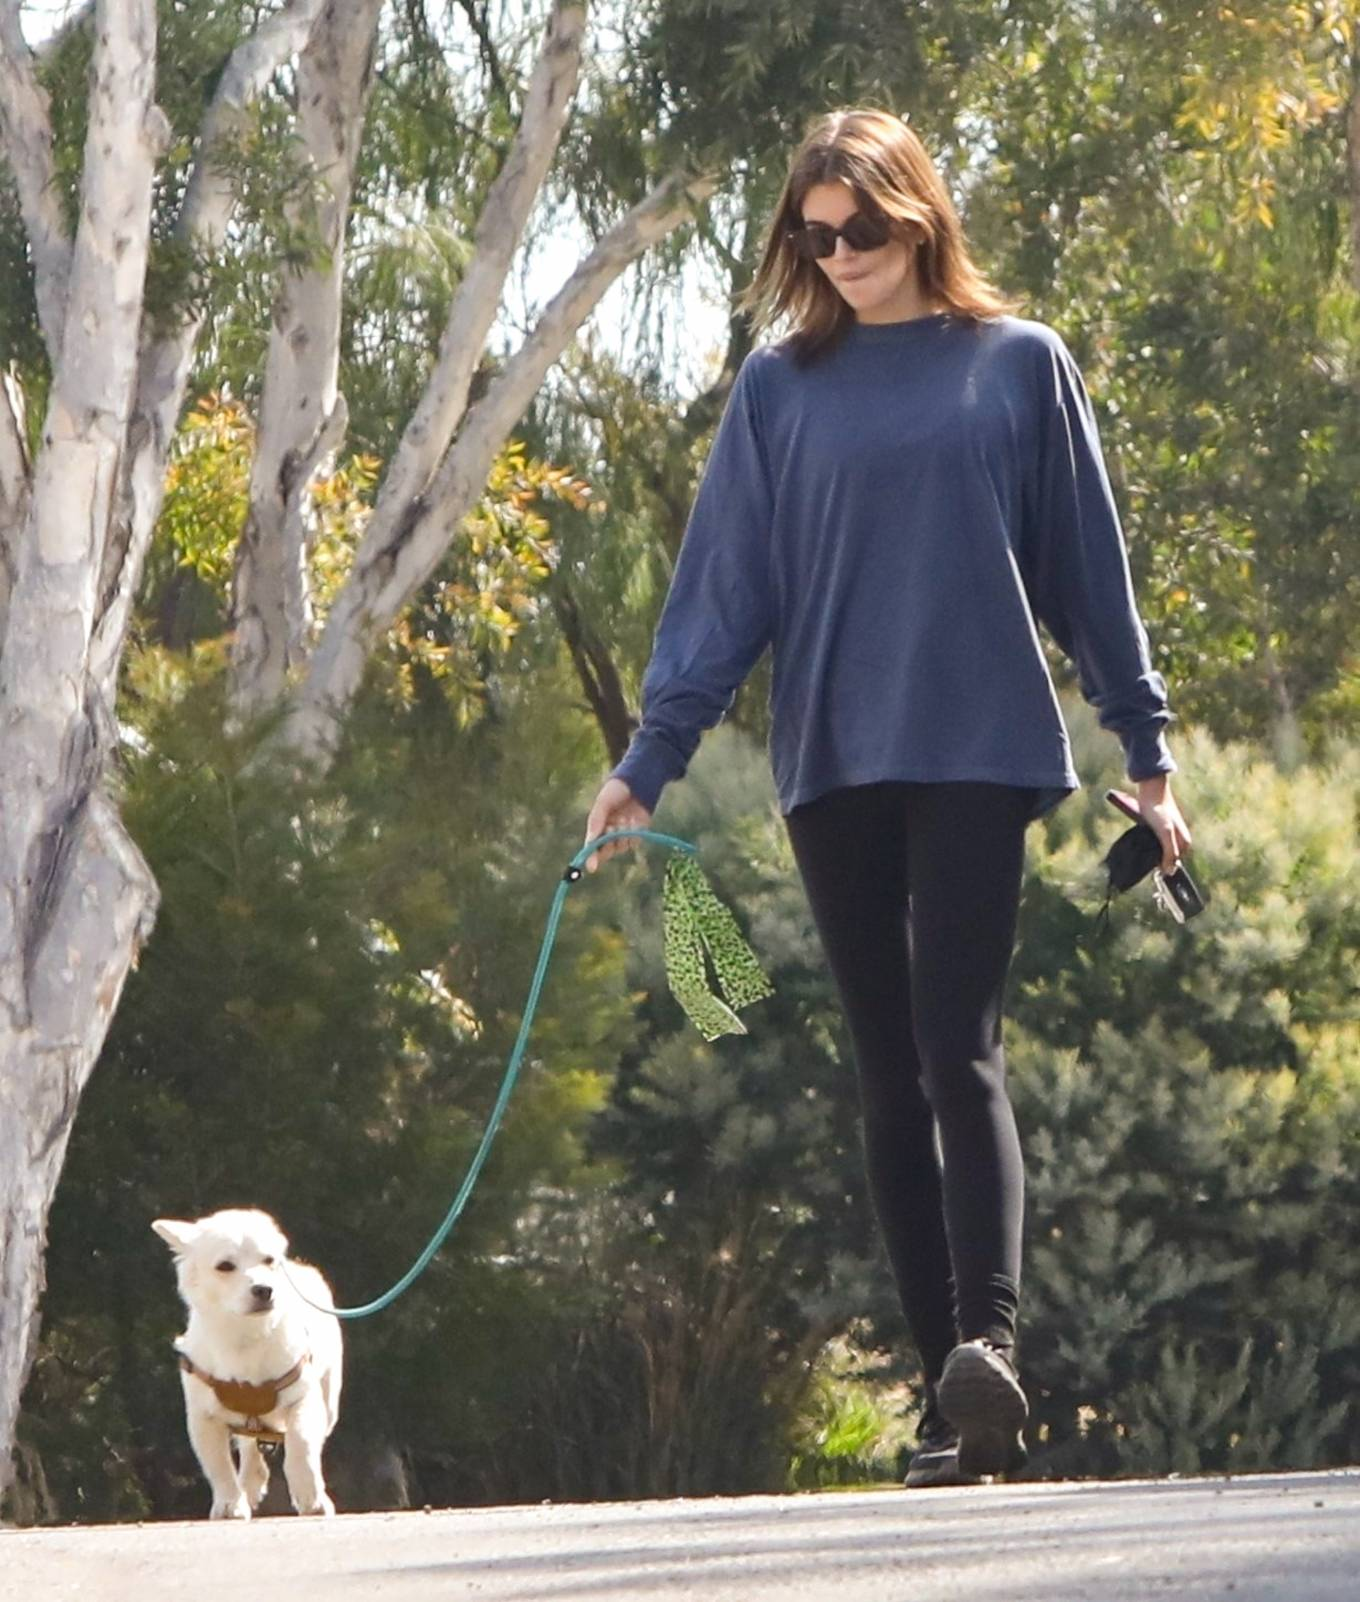 Kaia Gerber wearing a relaxed fit navy blue sweatshirt with full sleeves and a crew neck